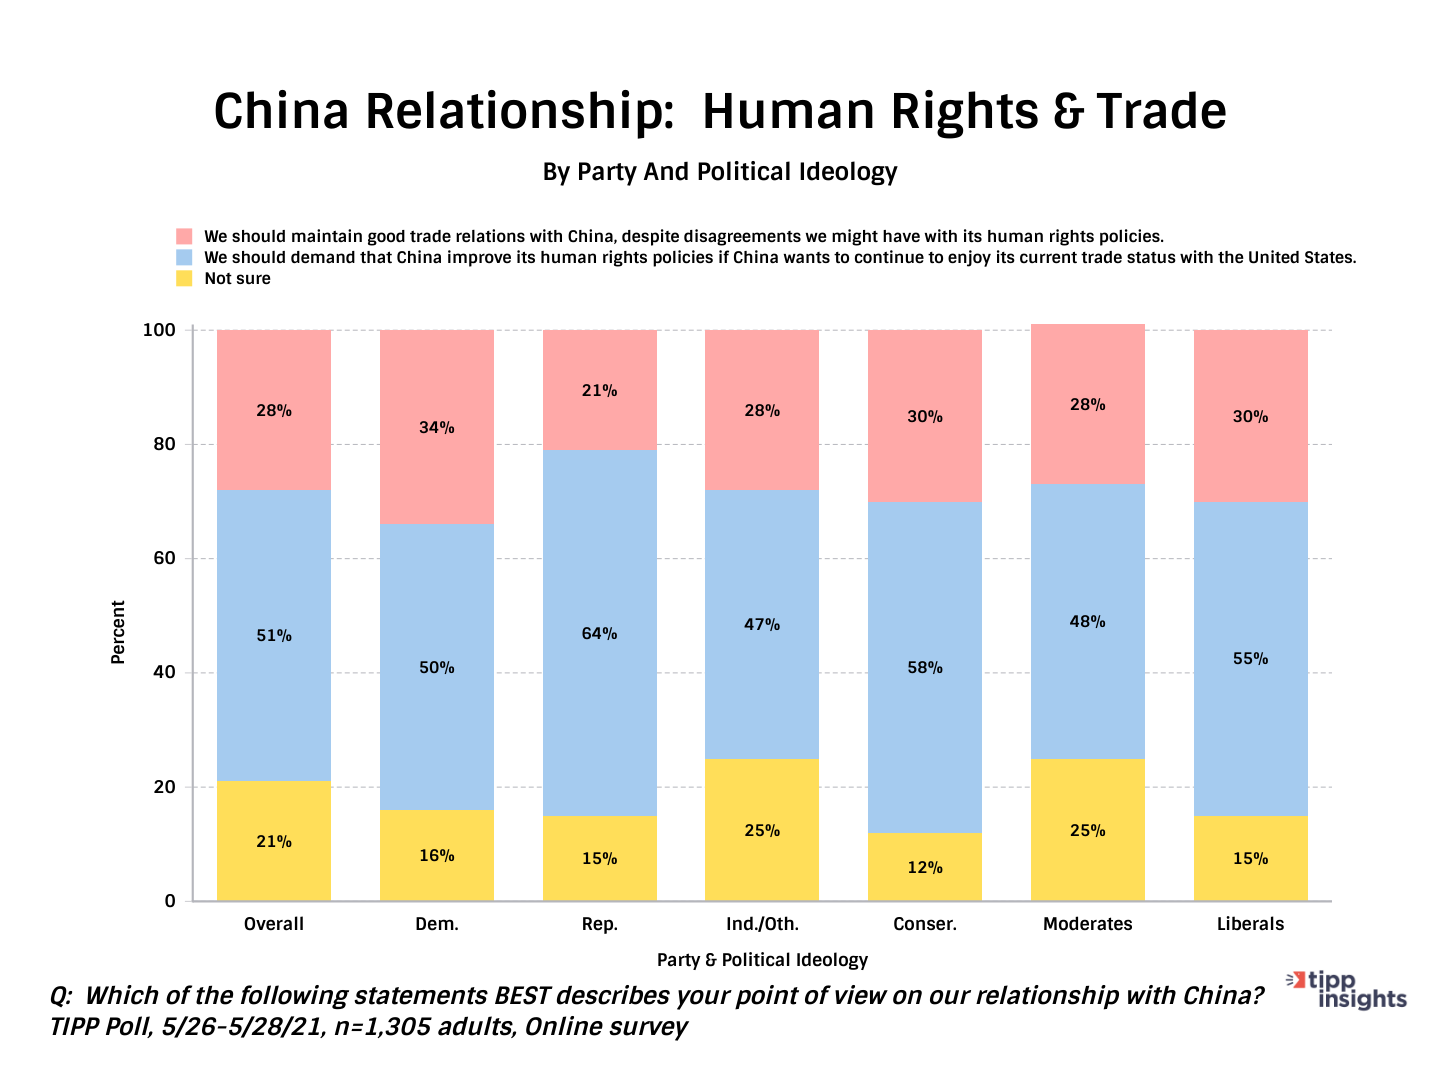 Human Rights And Trade Along with American Political Parties and Ideologies - Chart